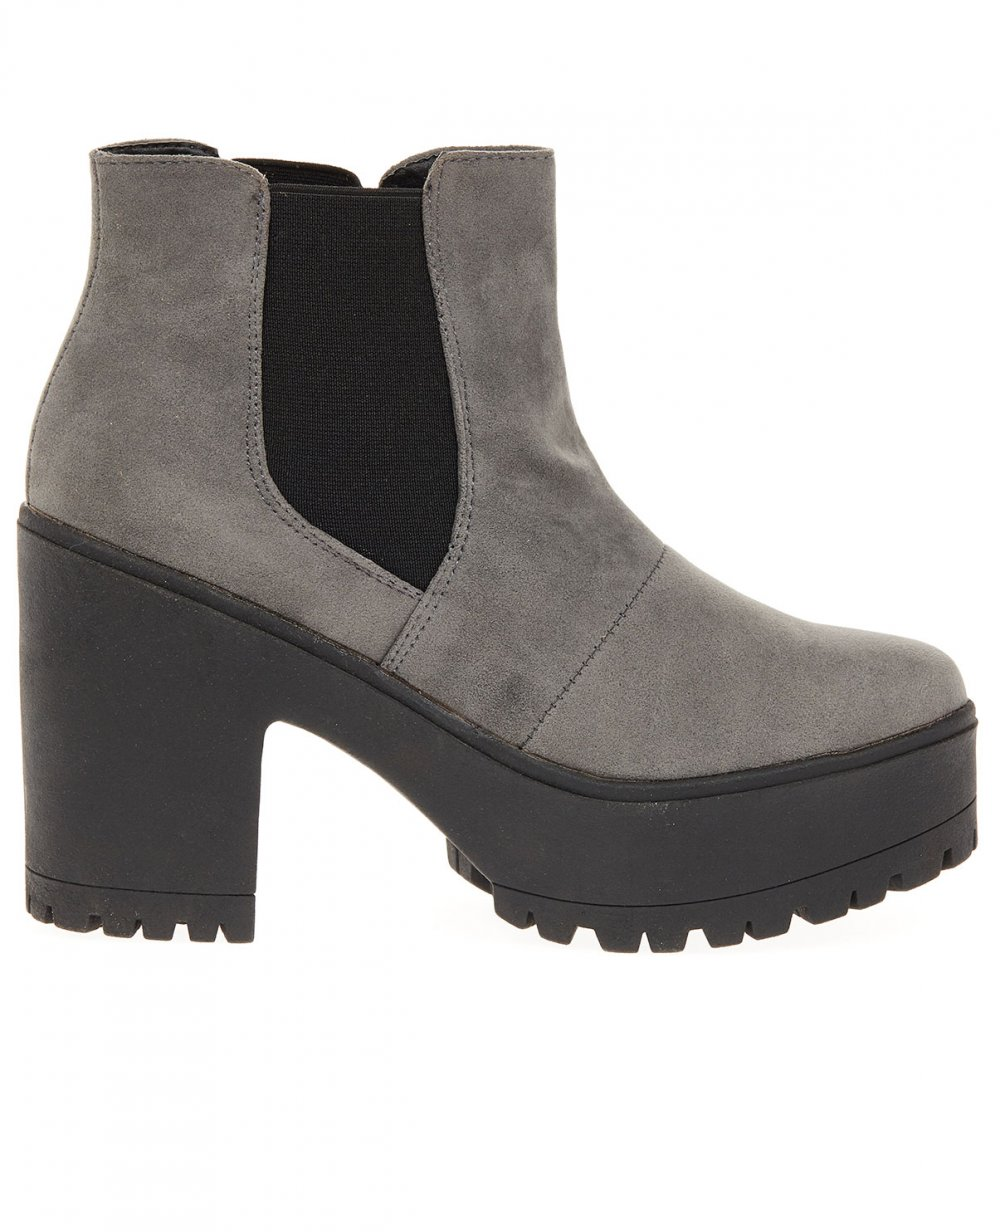 Womens Grey Ankle Boots sVpwEYnG